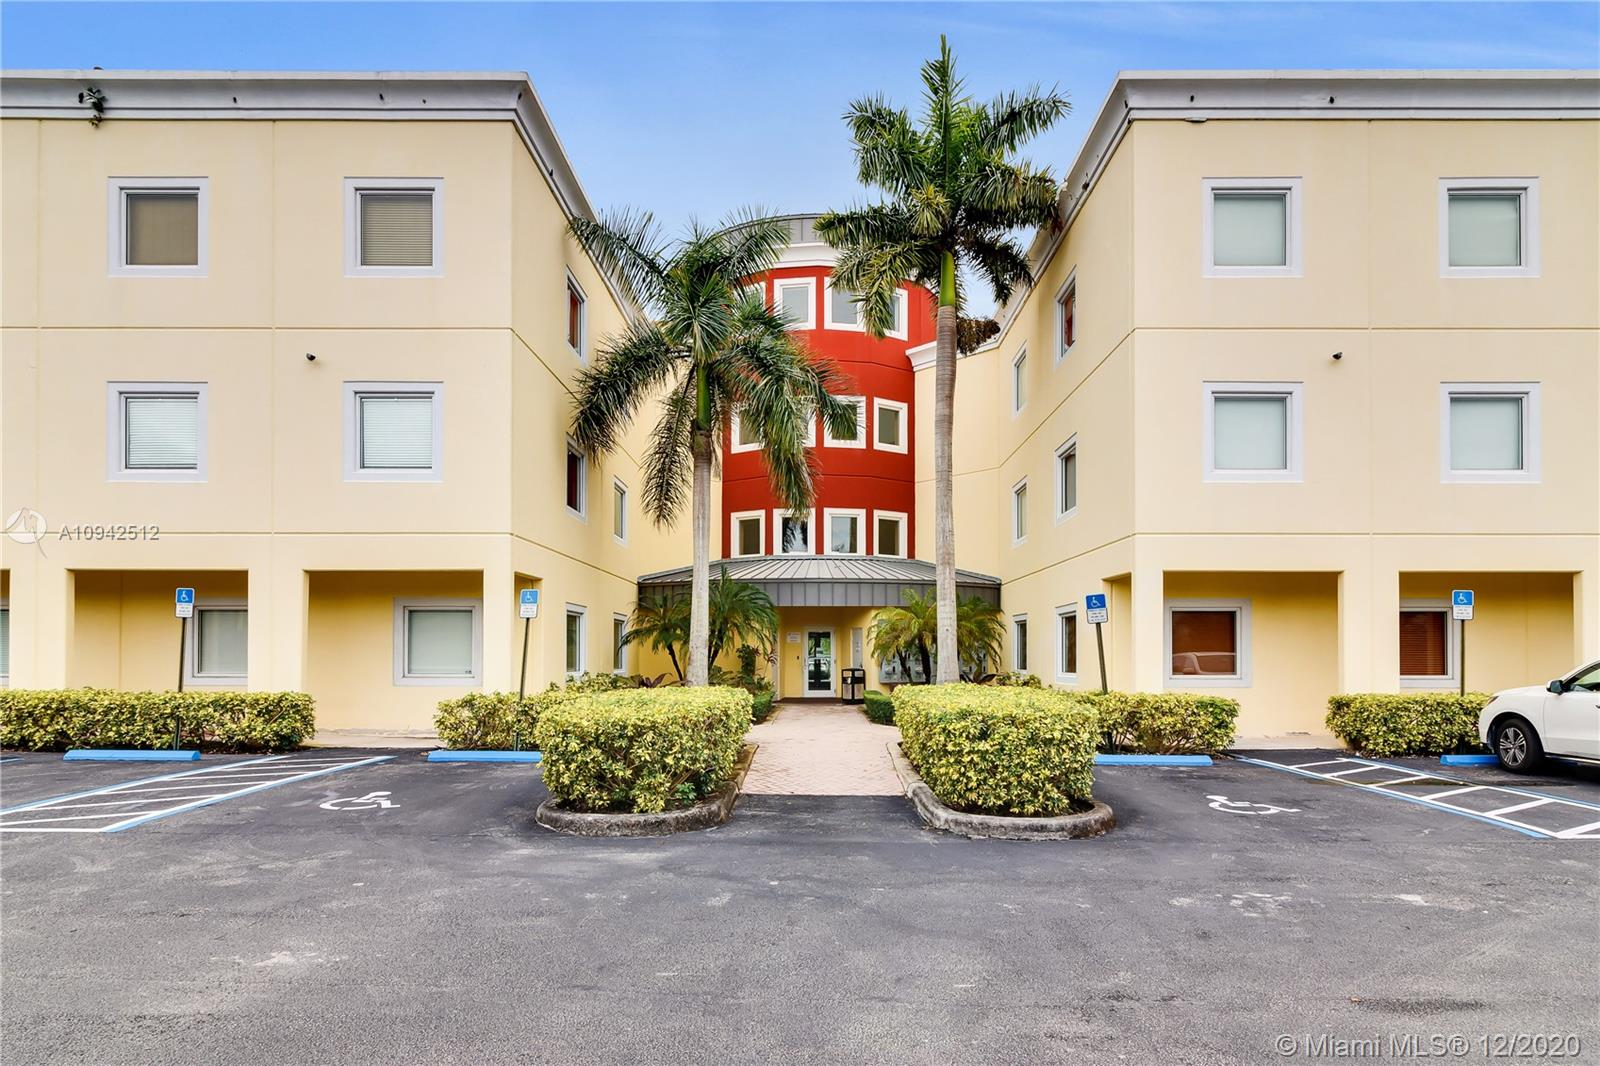 12595 SW 137th Ave #210 For Sale A10942512, FL